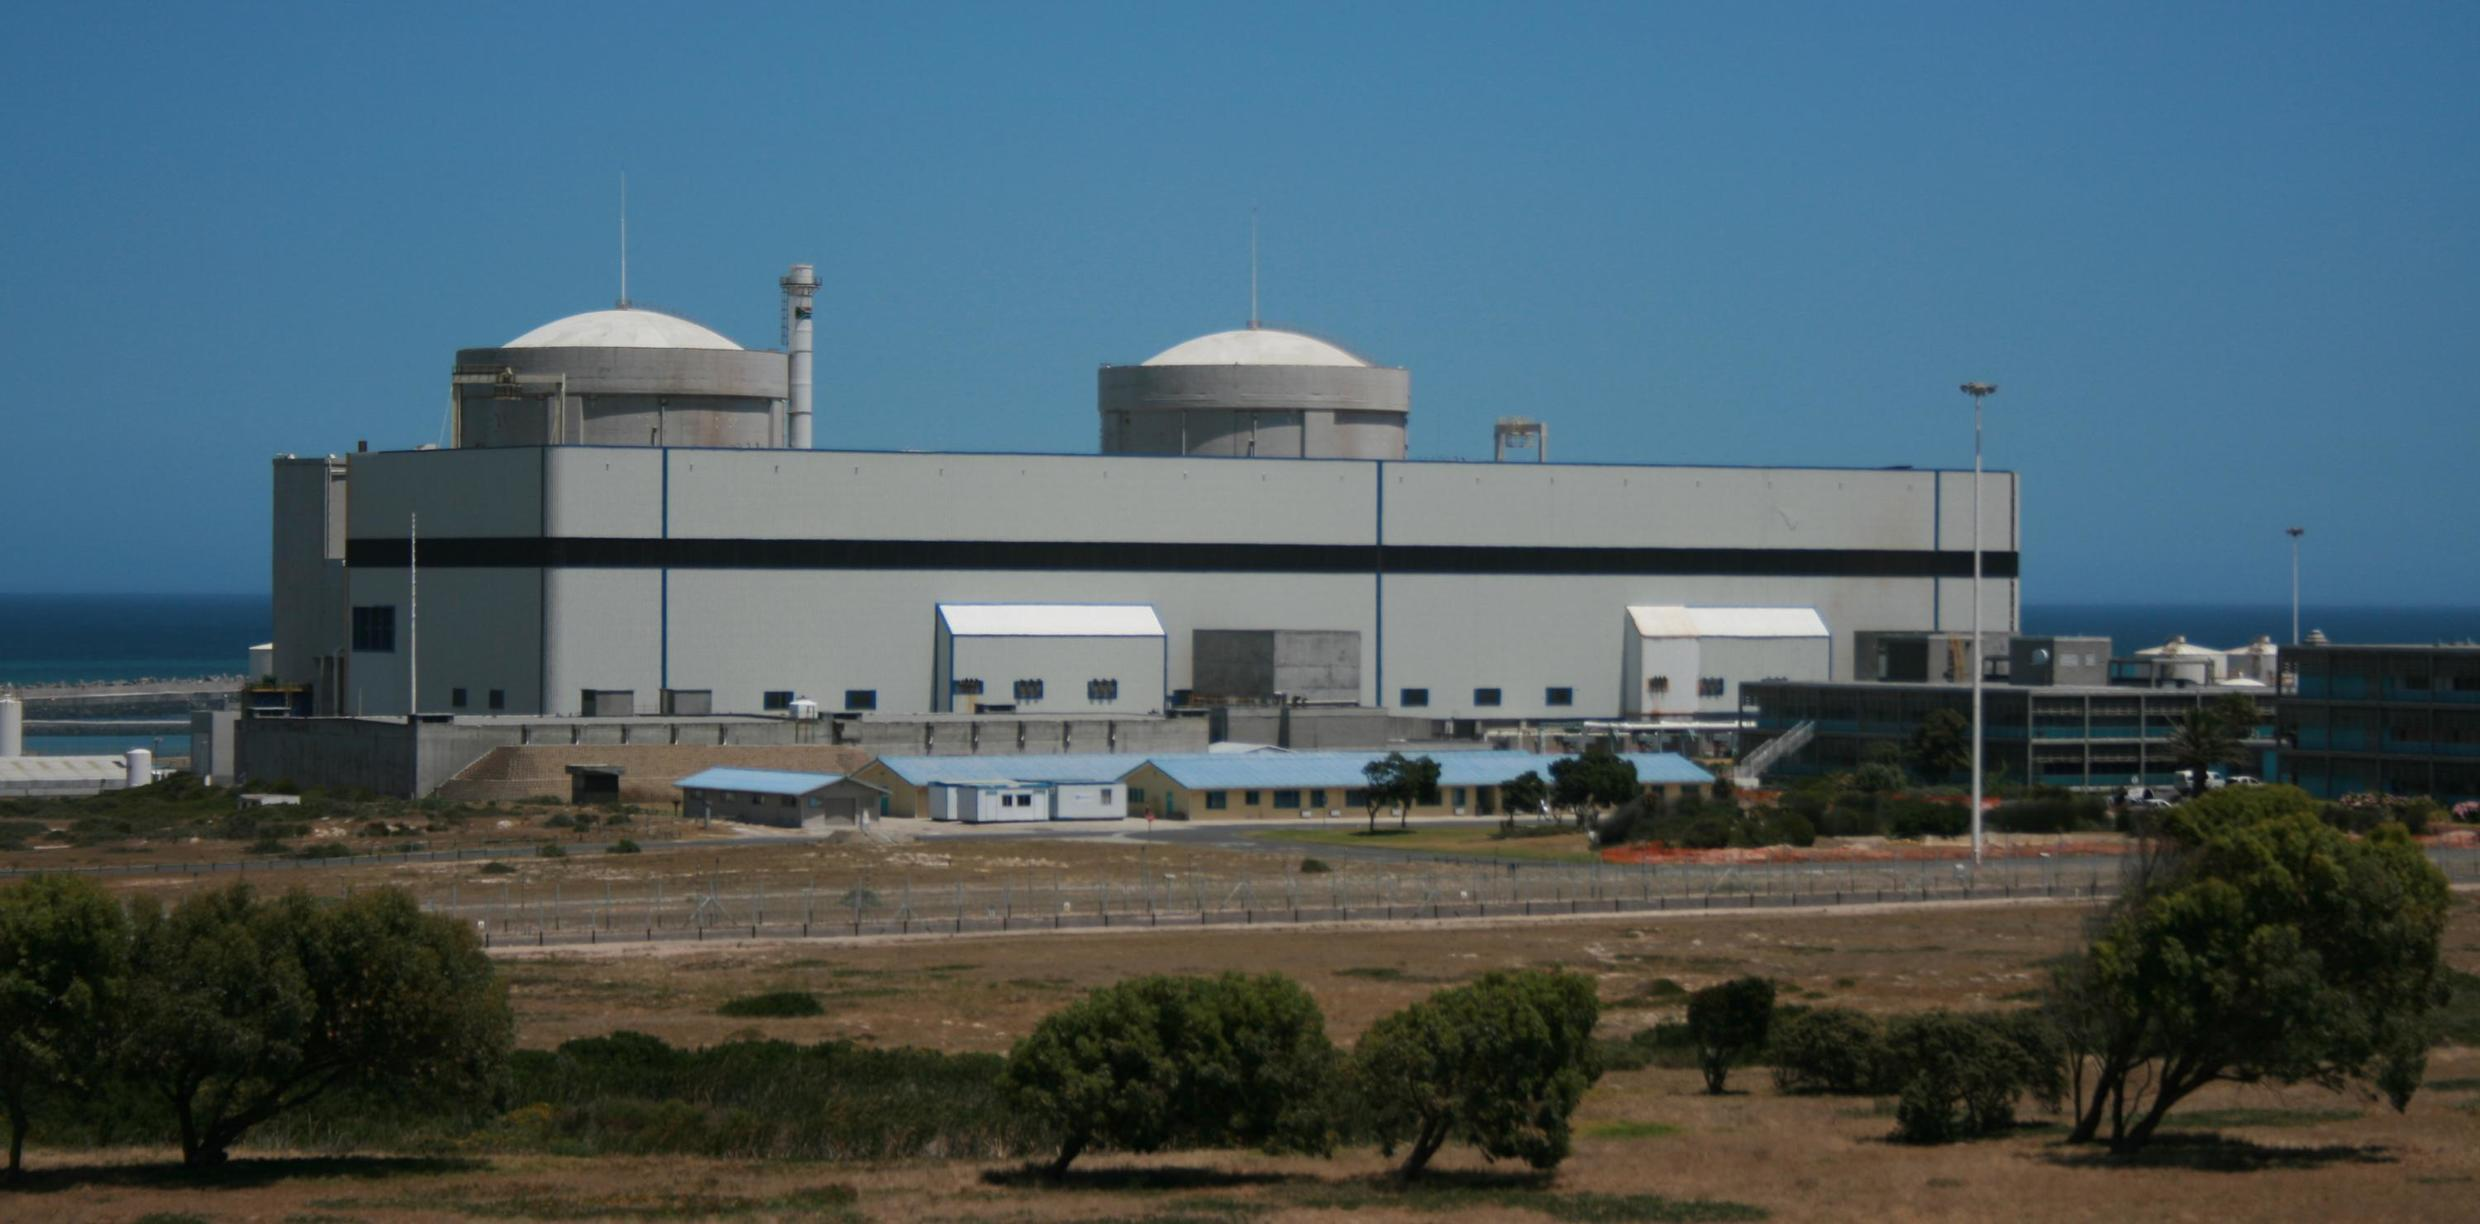 Koeberg nuclear power station is currently the only one in South Africa, and the only one on the entire African continent.